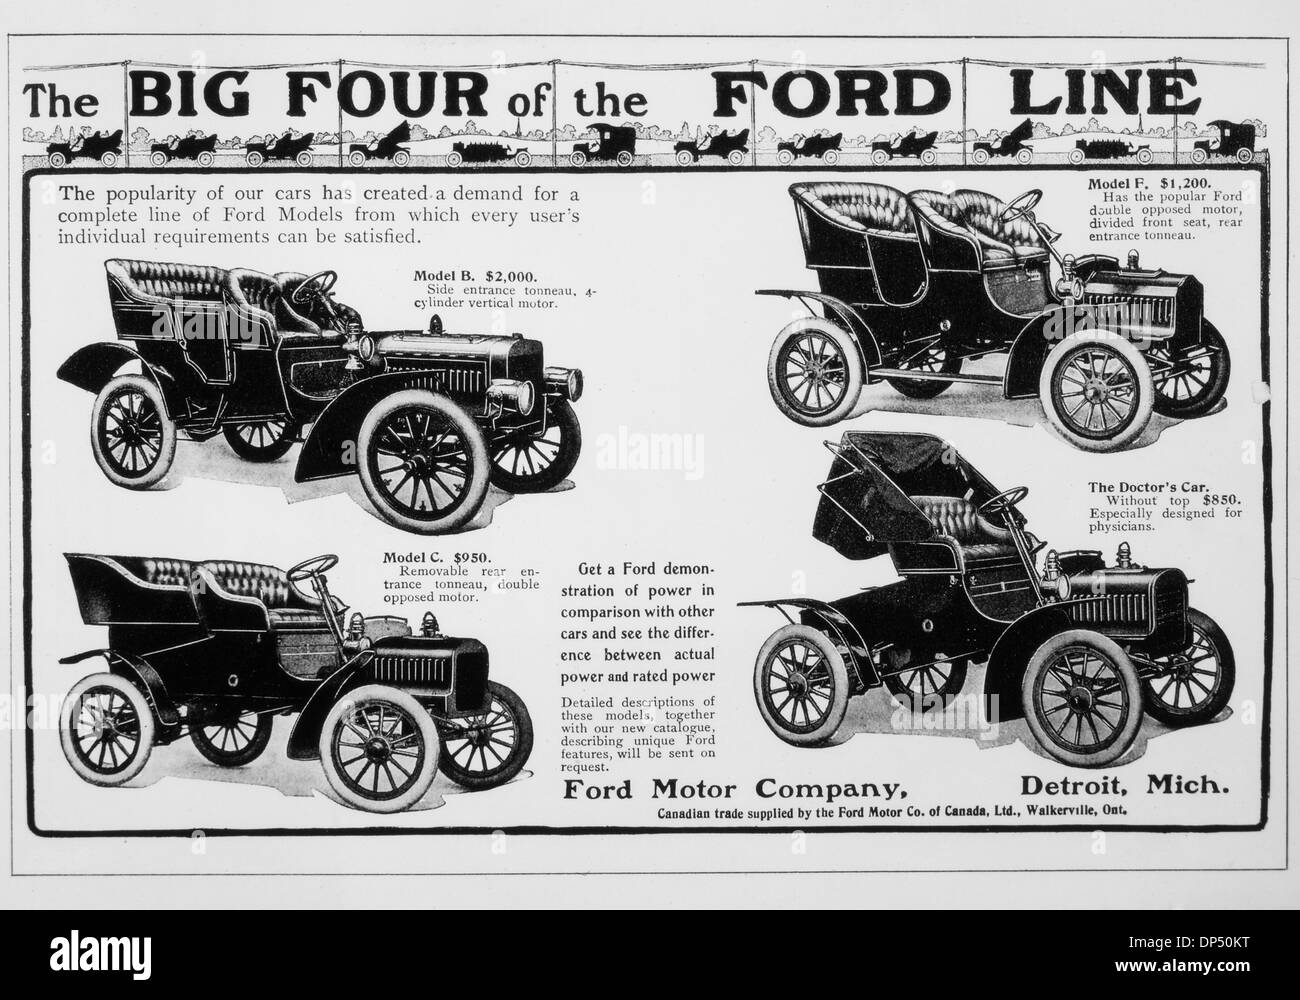 Ford Motor Company Vintage Advertisement Featuring the Big Four     Ford Motor Company Vintage Advertisement Featuring the Big Four  Automobiles  circa 1909